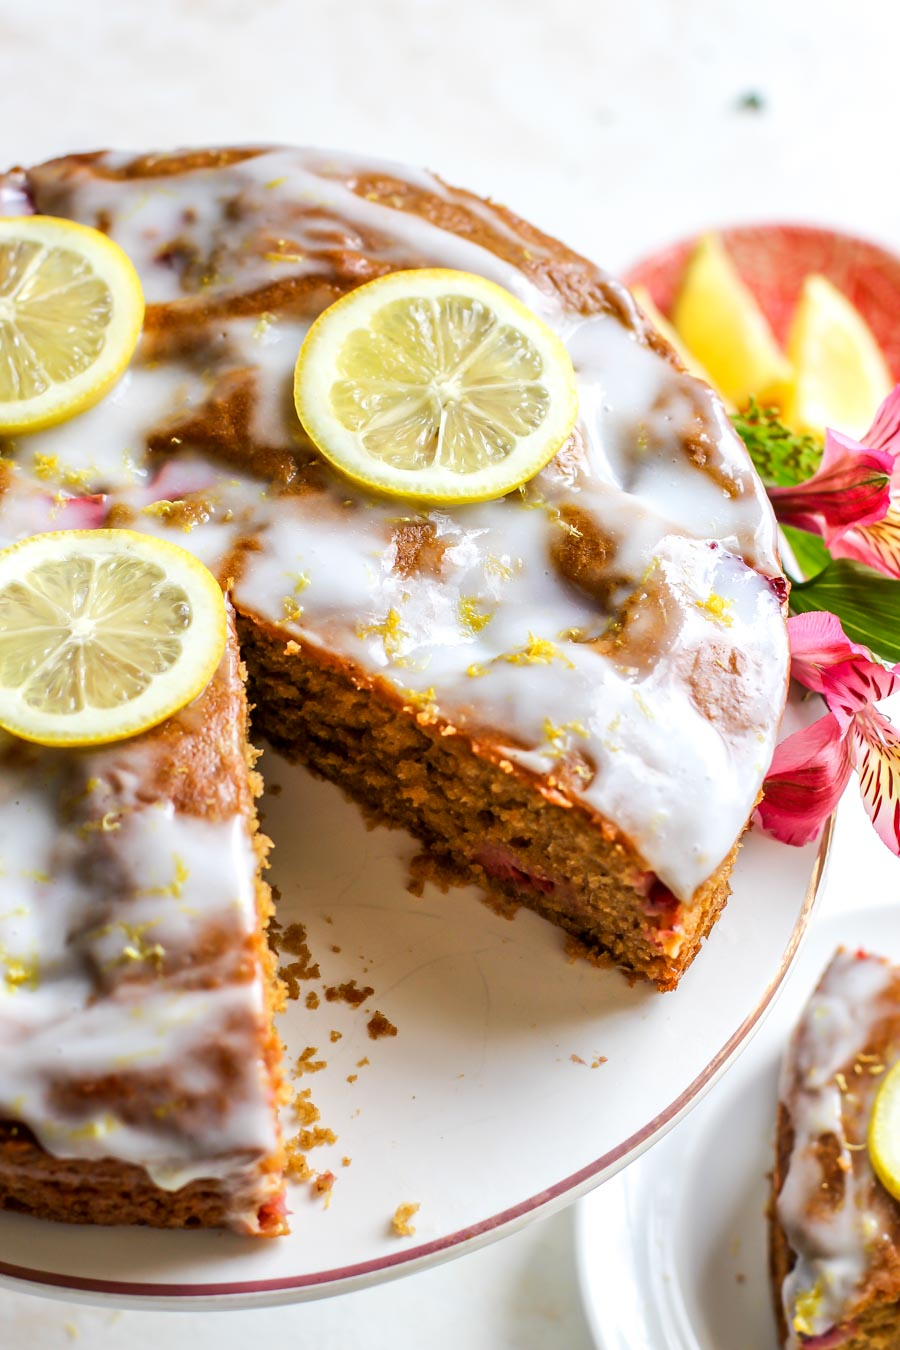 Strawberry-Lemon Cardamom Brunch Cake